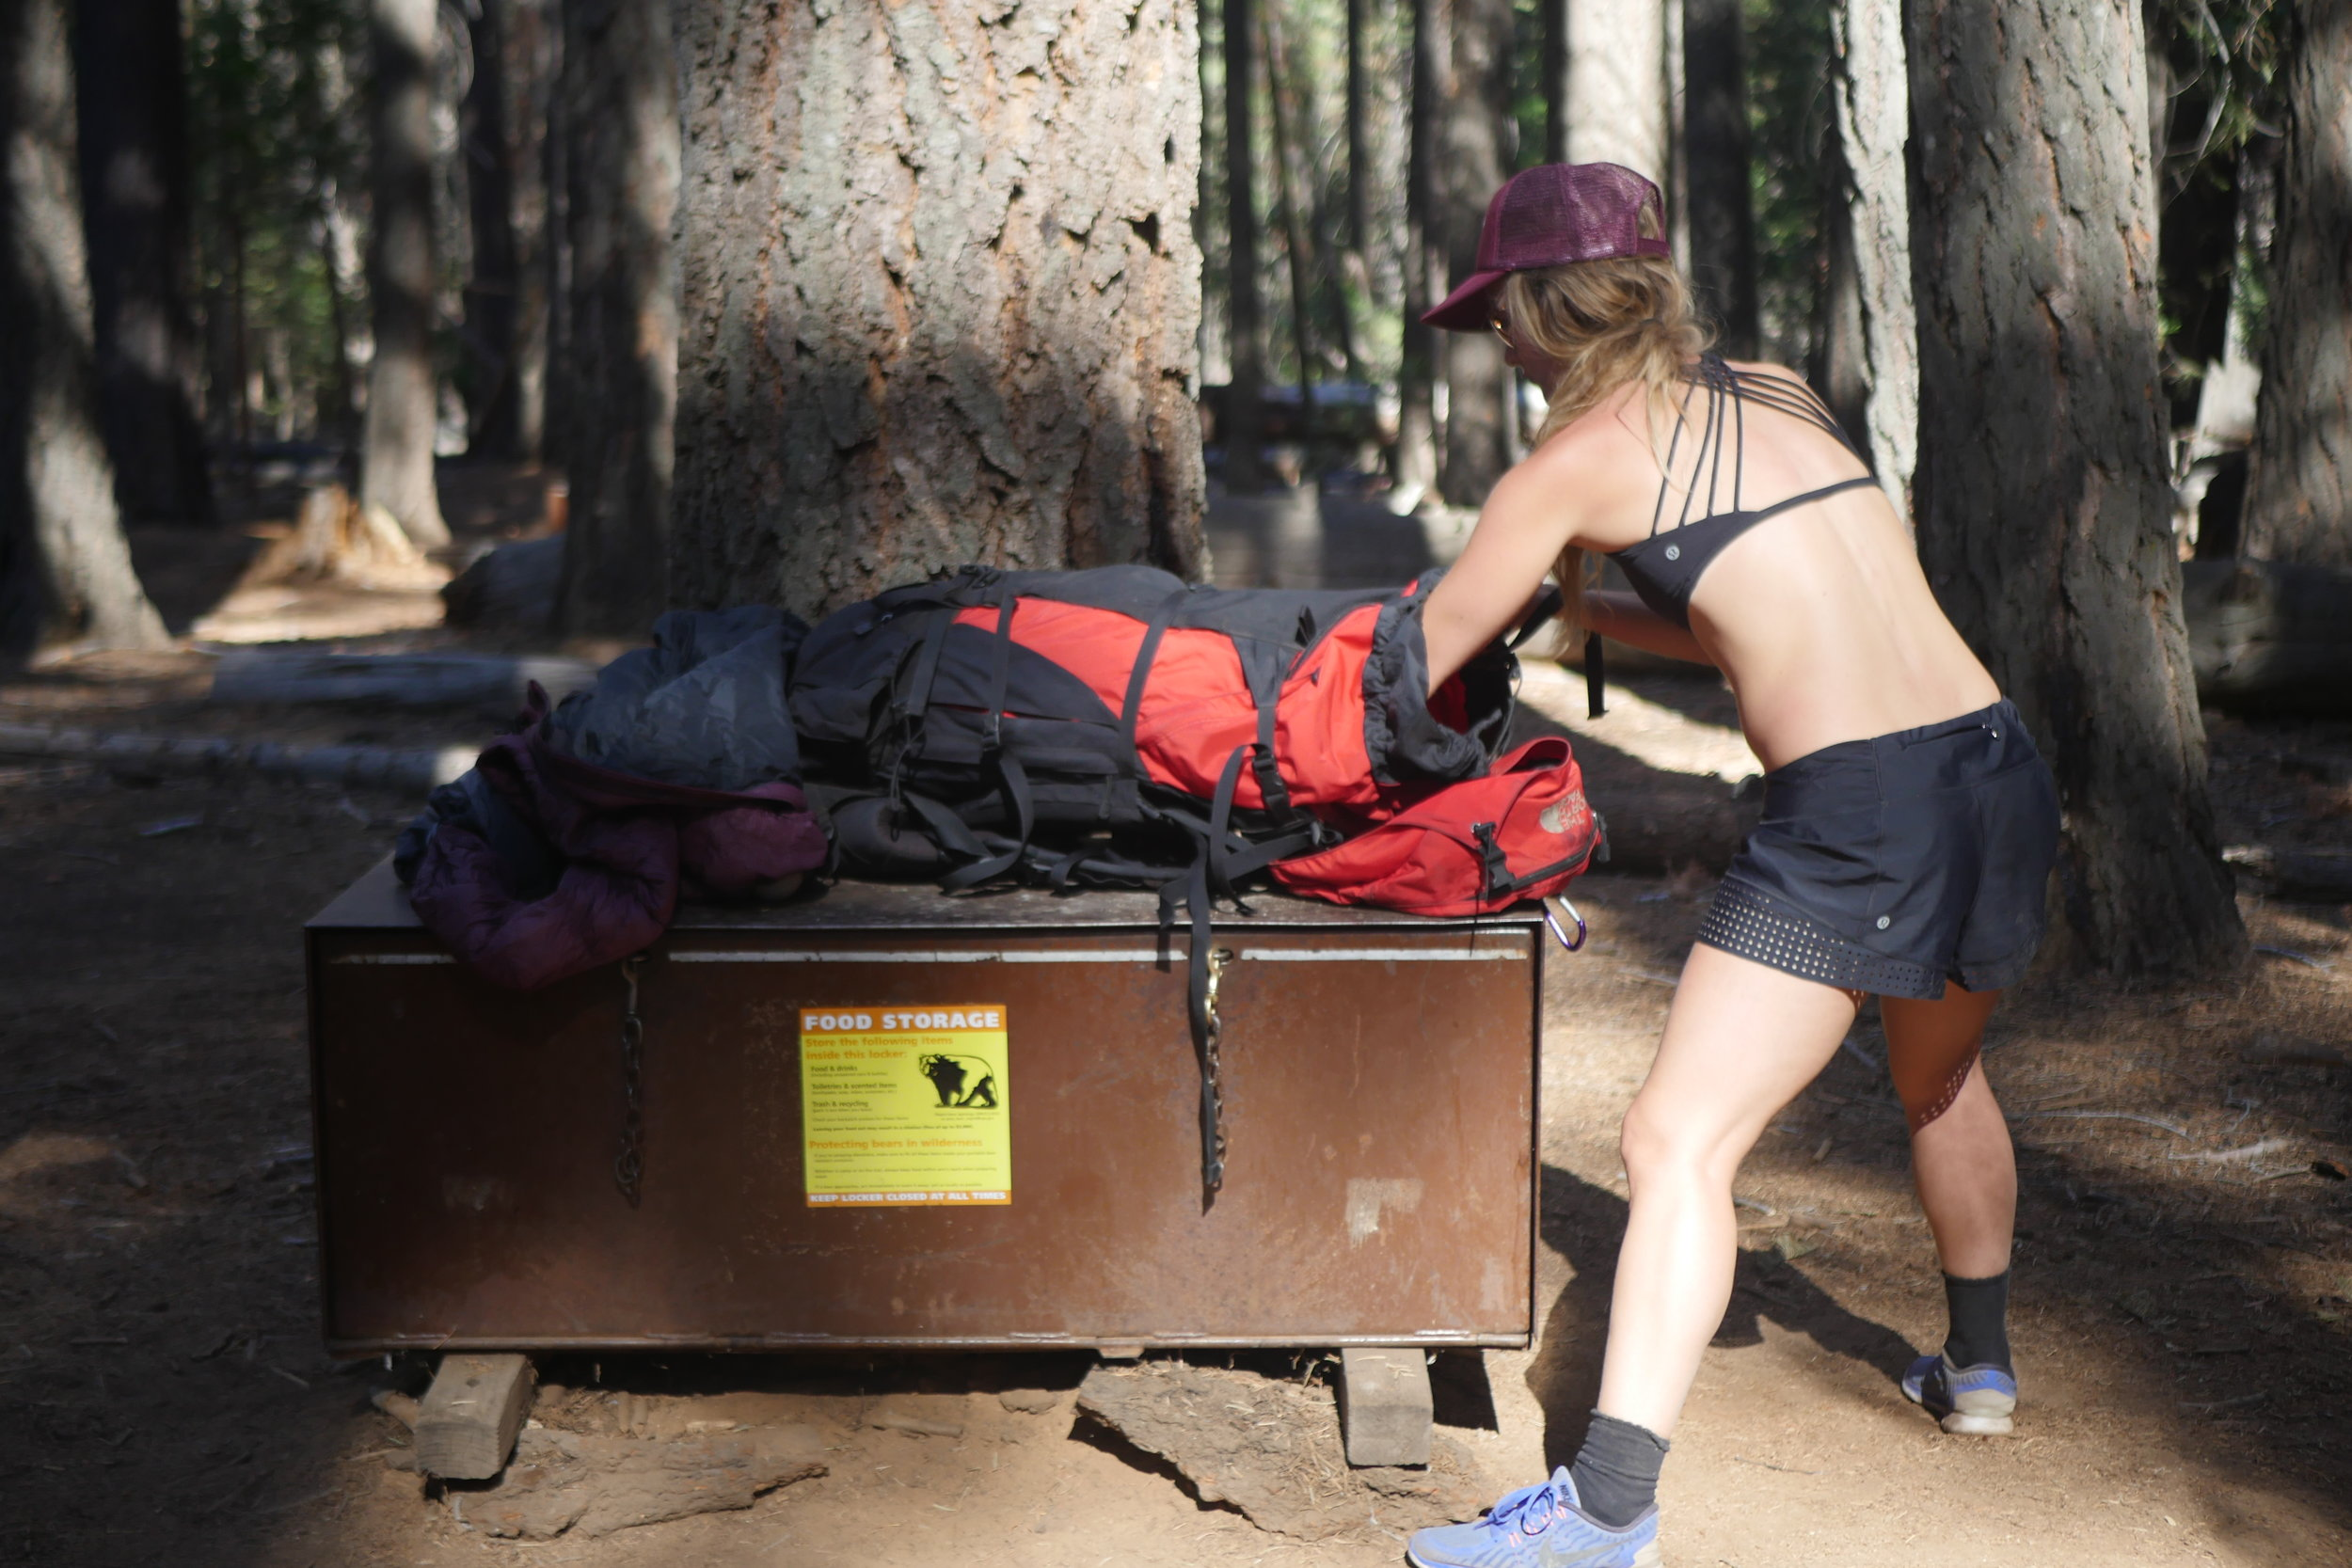 There are bear boxes provided at Little Yosemite Camp Grounds, but if you are hiking further to the next camp grounds you need to bring a bear container yourself